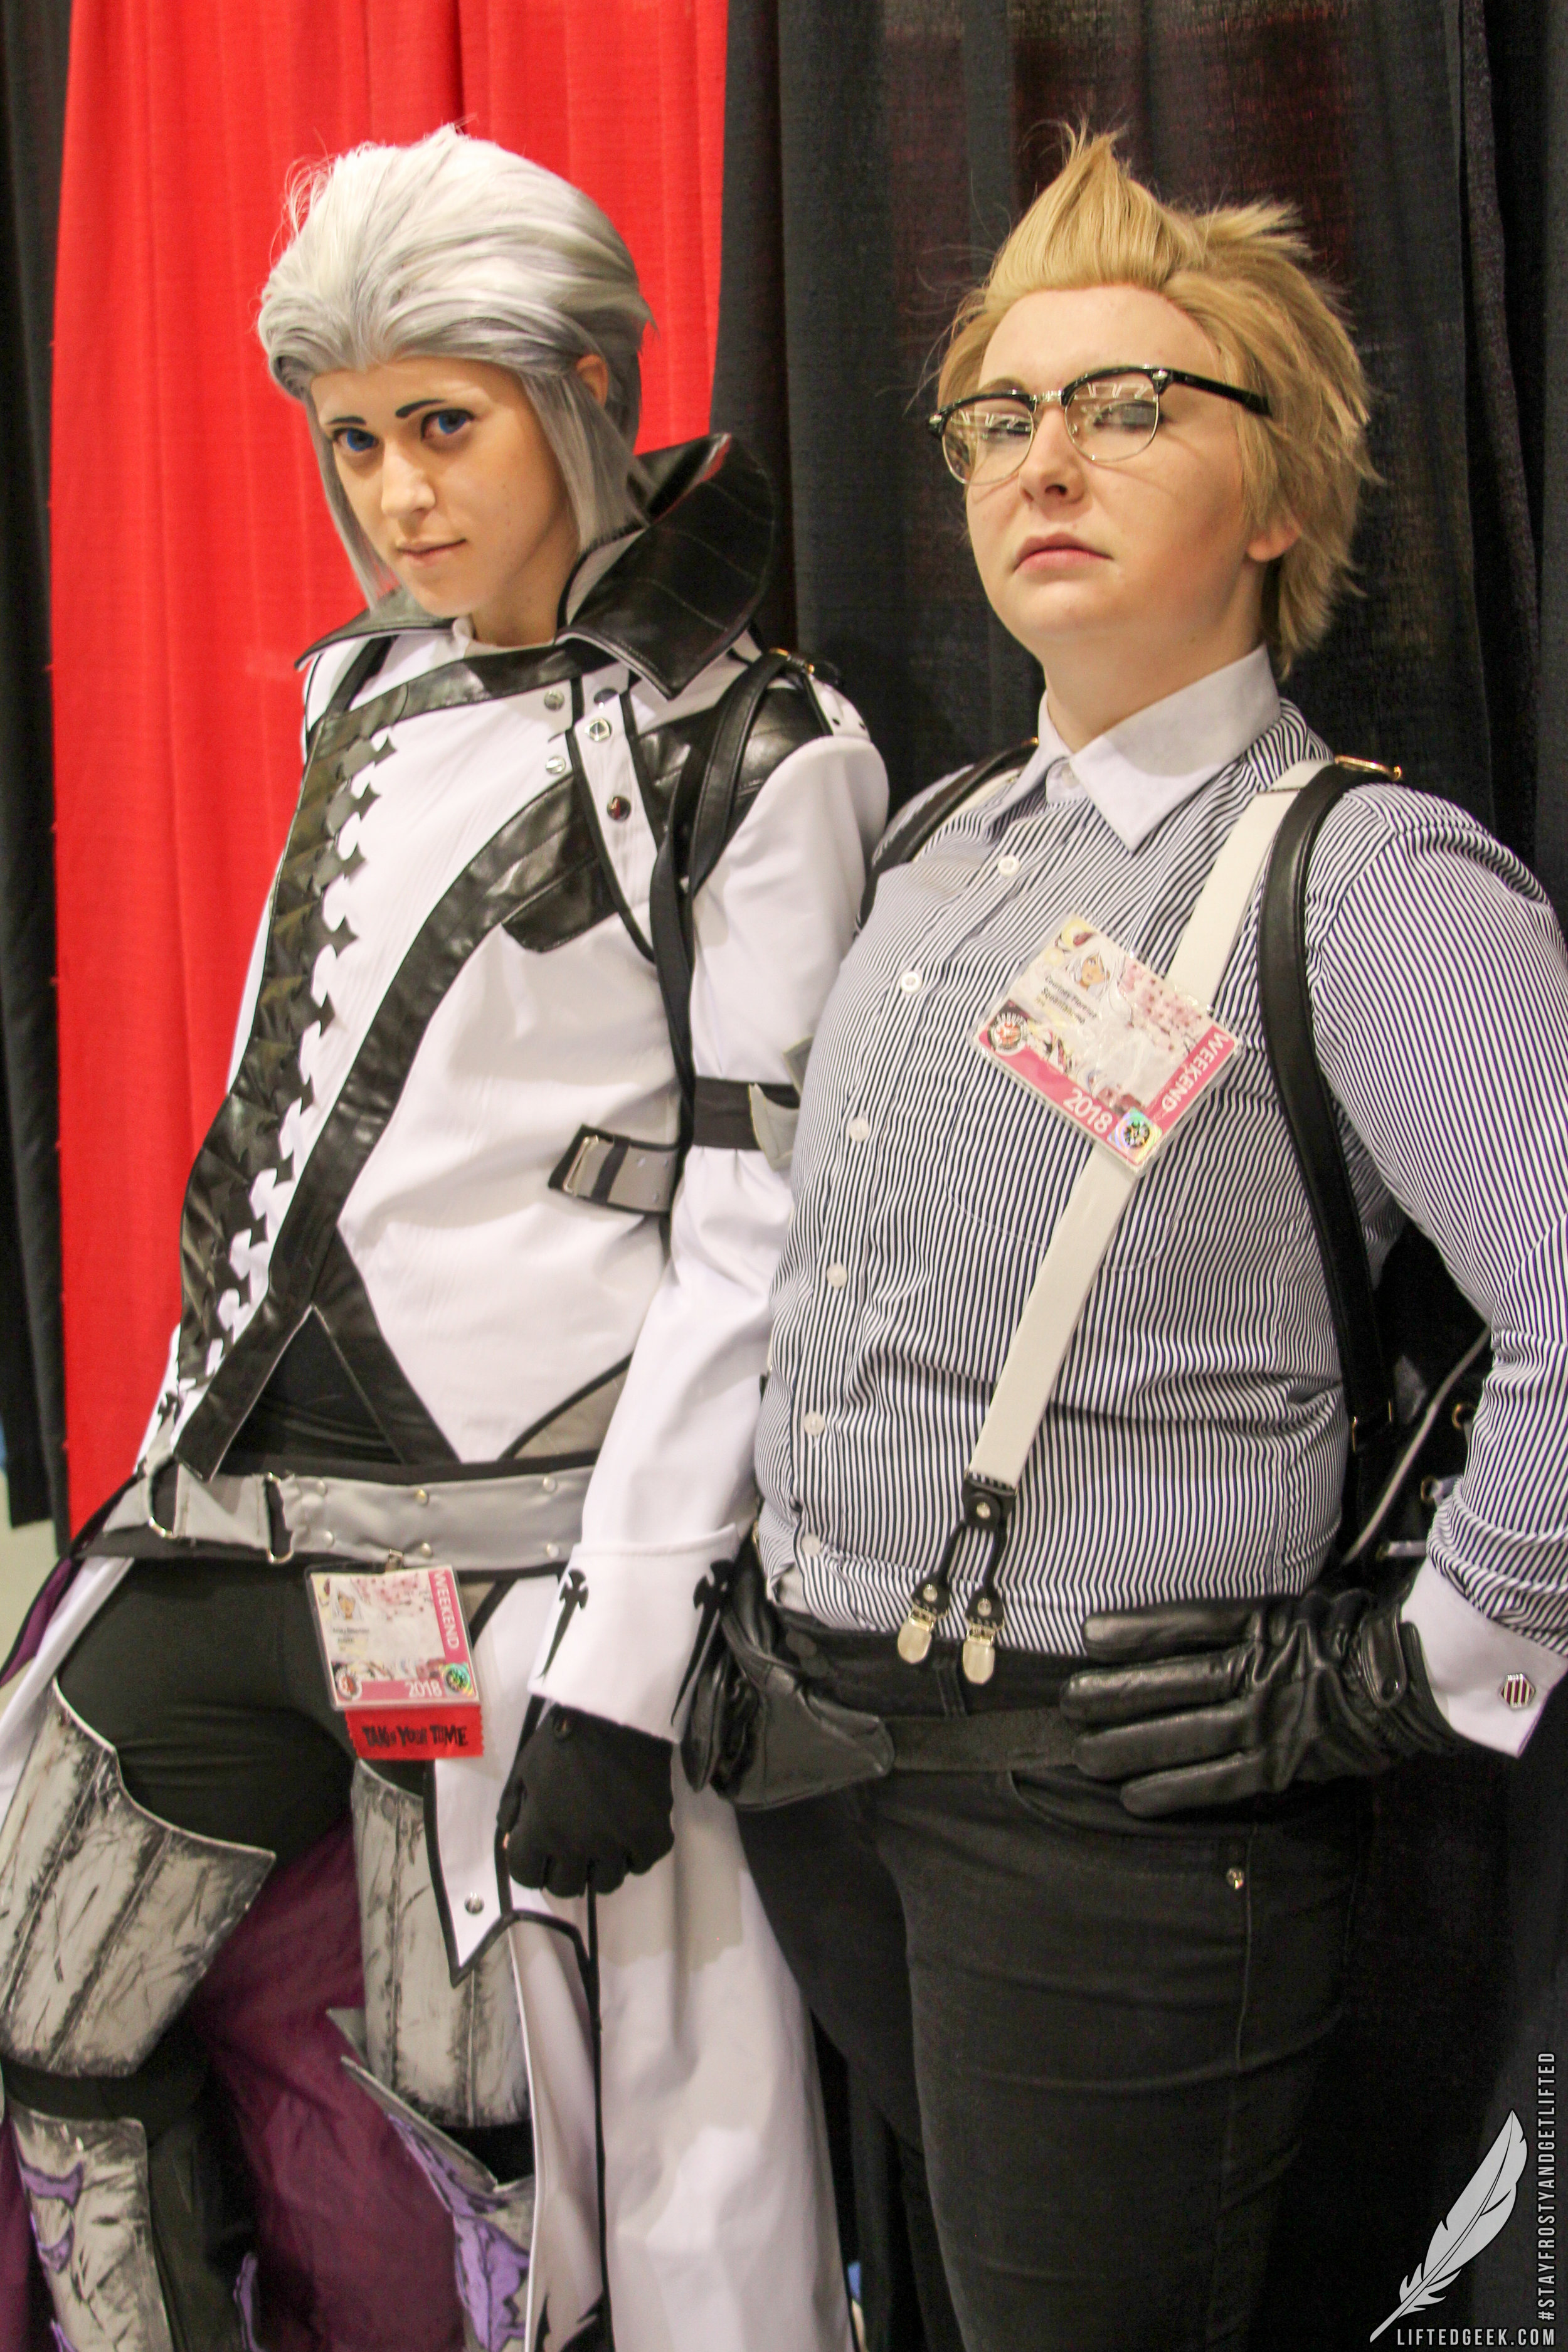 Sakuracon-cosplay-141.jpg